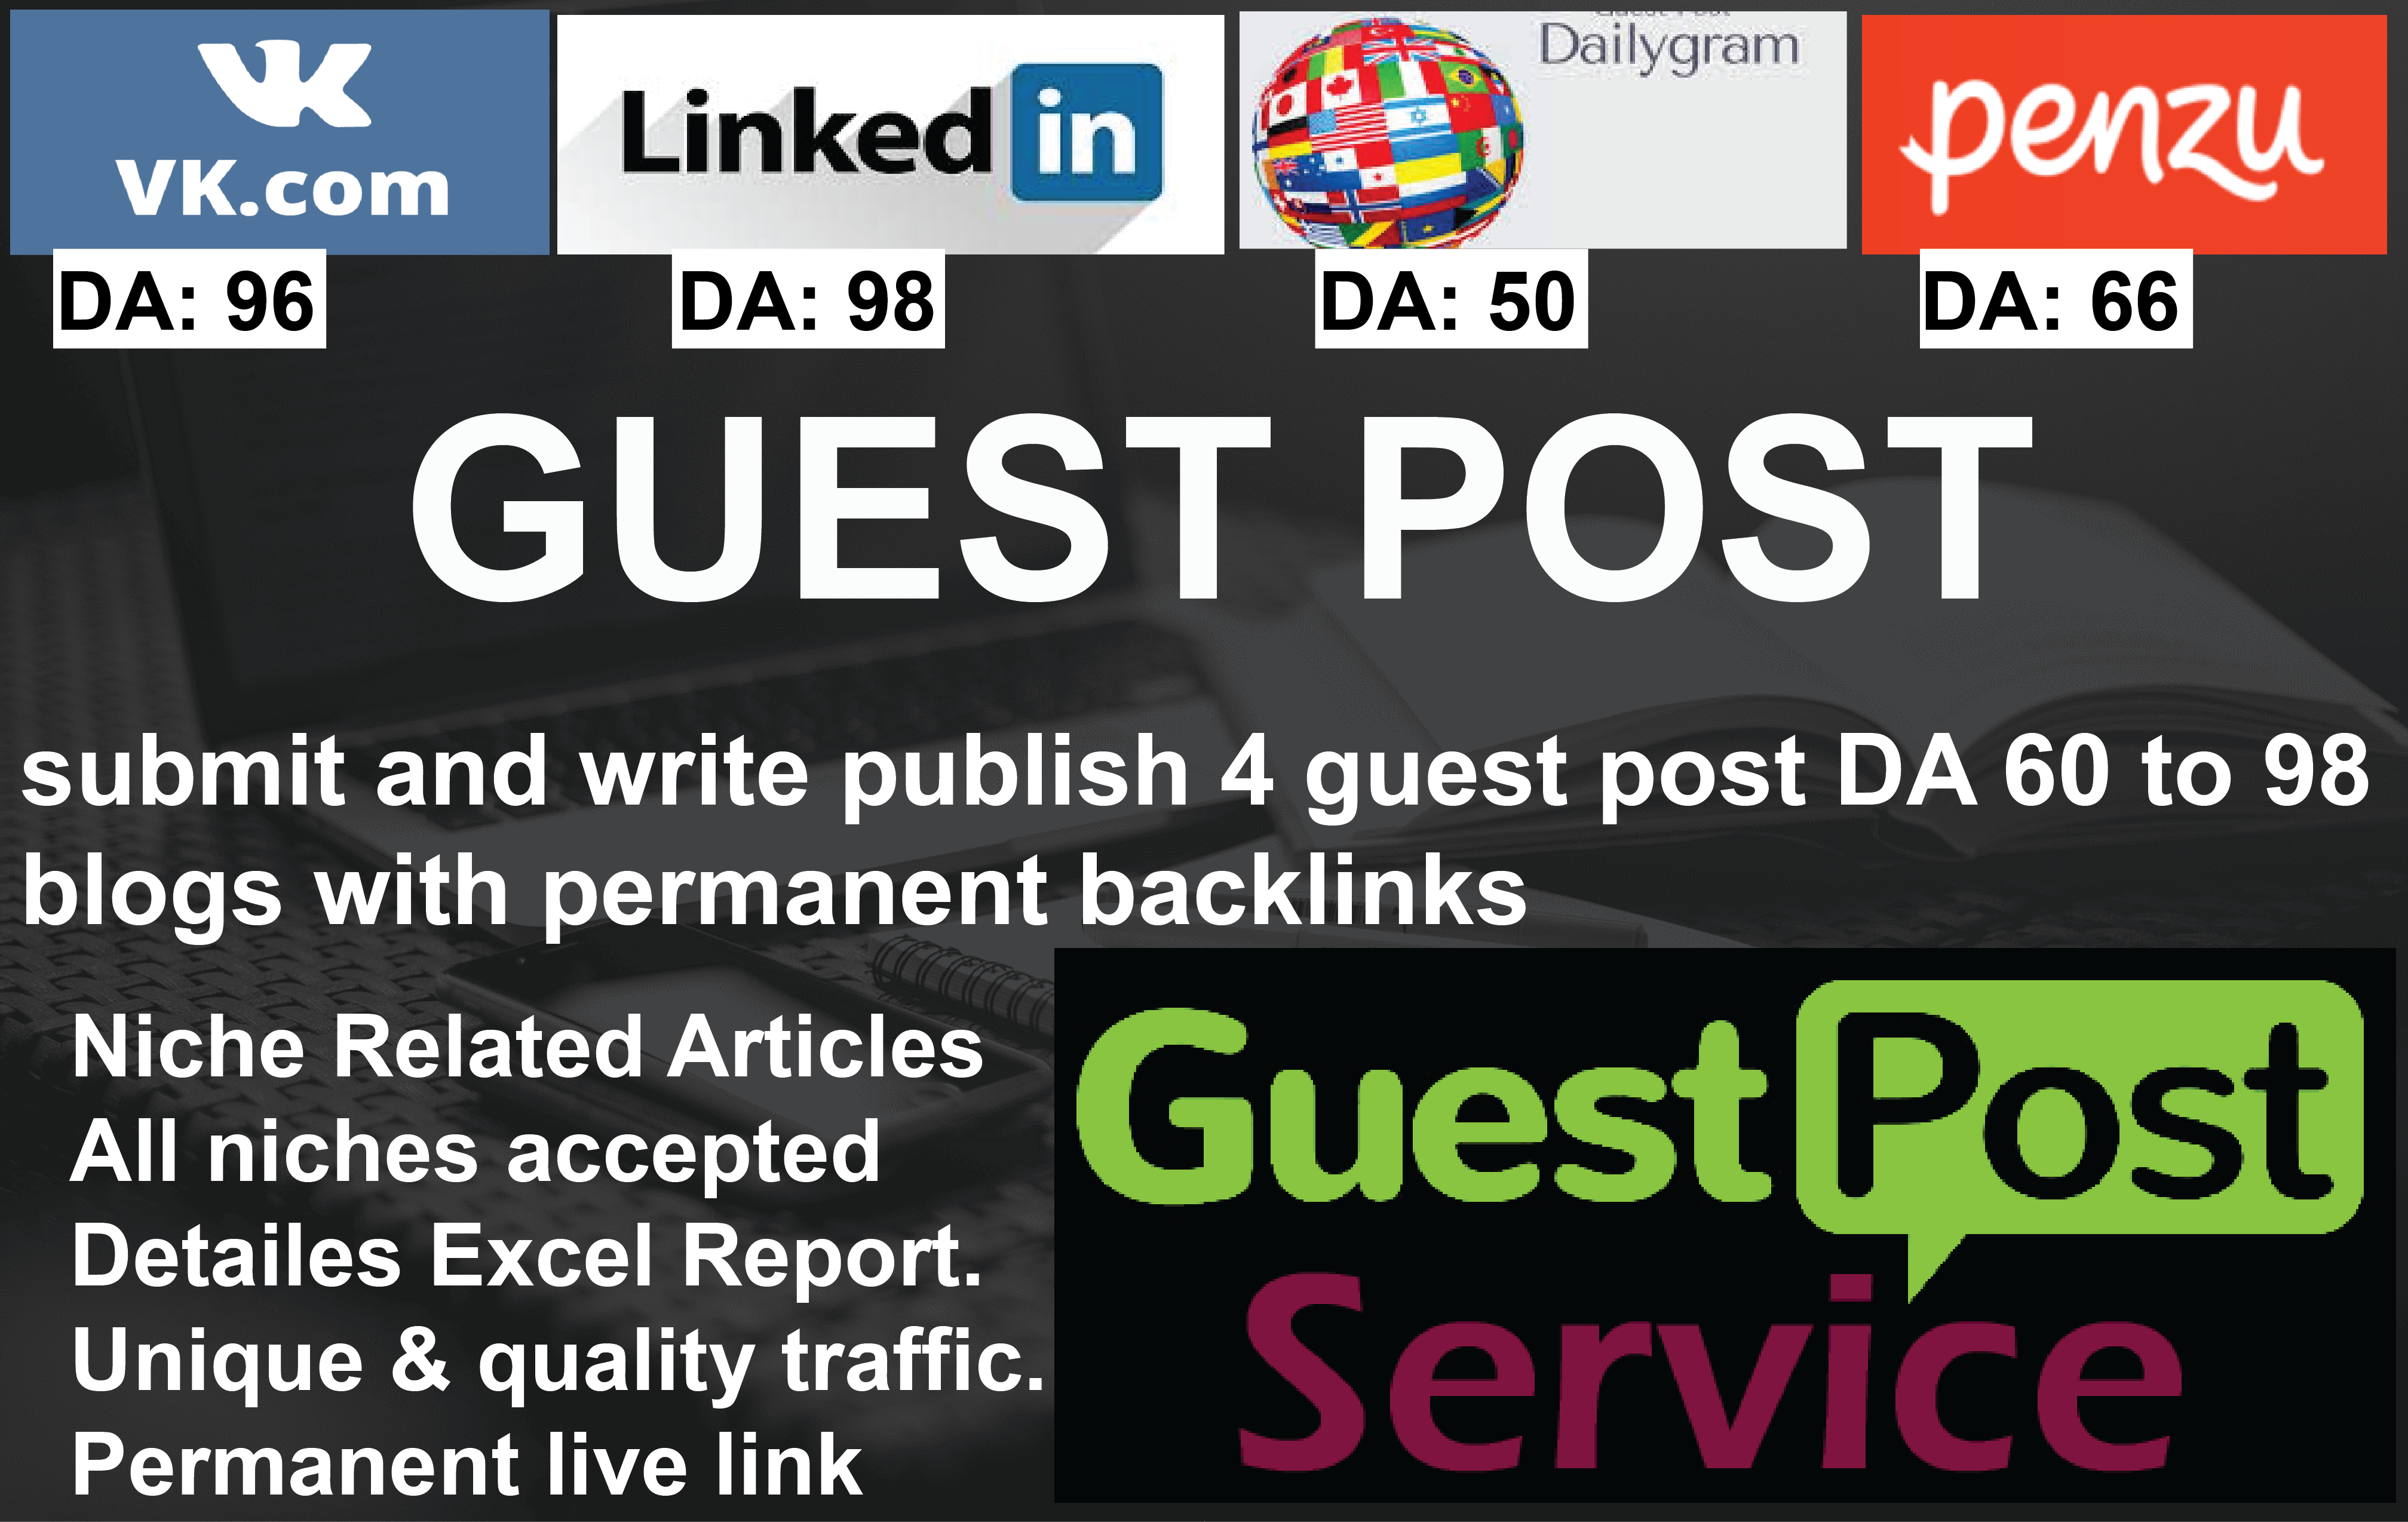 I will submit and write publish 4 guest post 80 da blogs with permanent backlinks